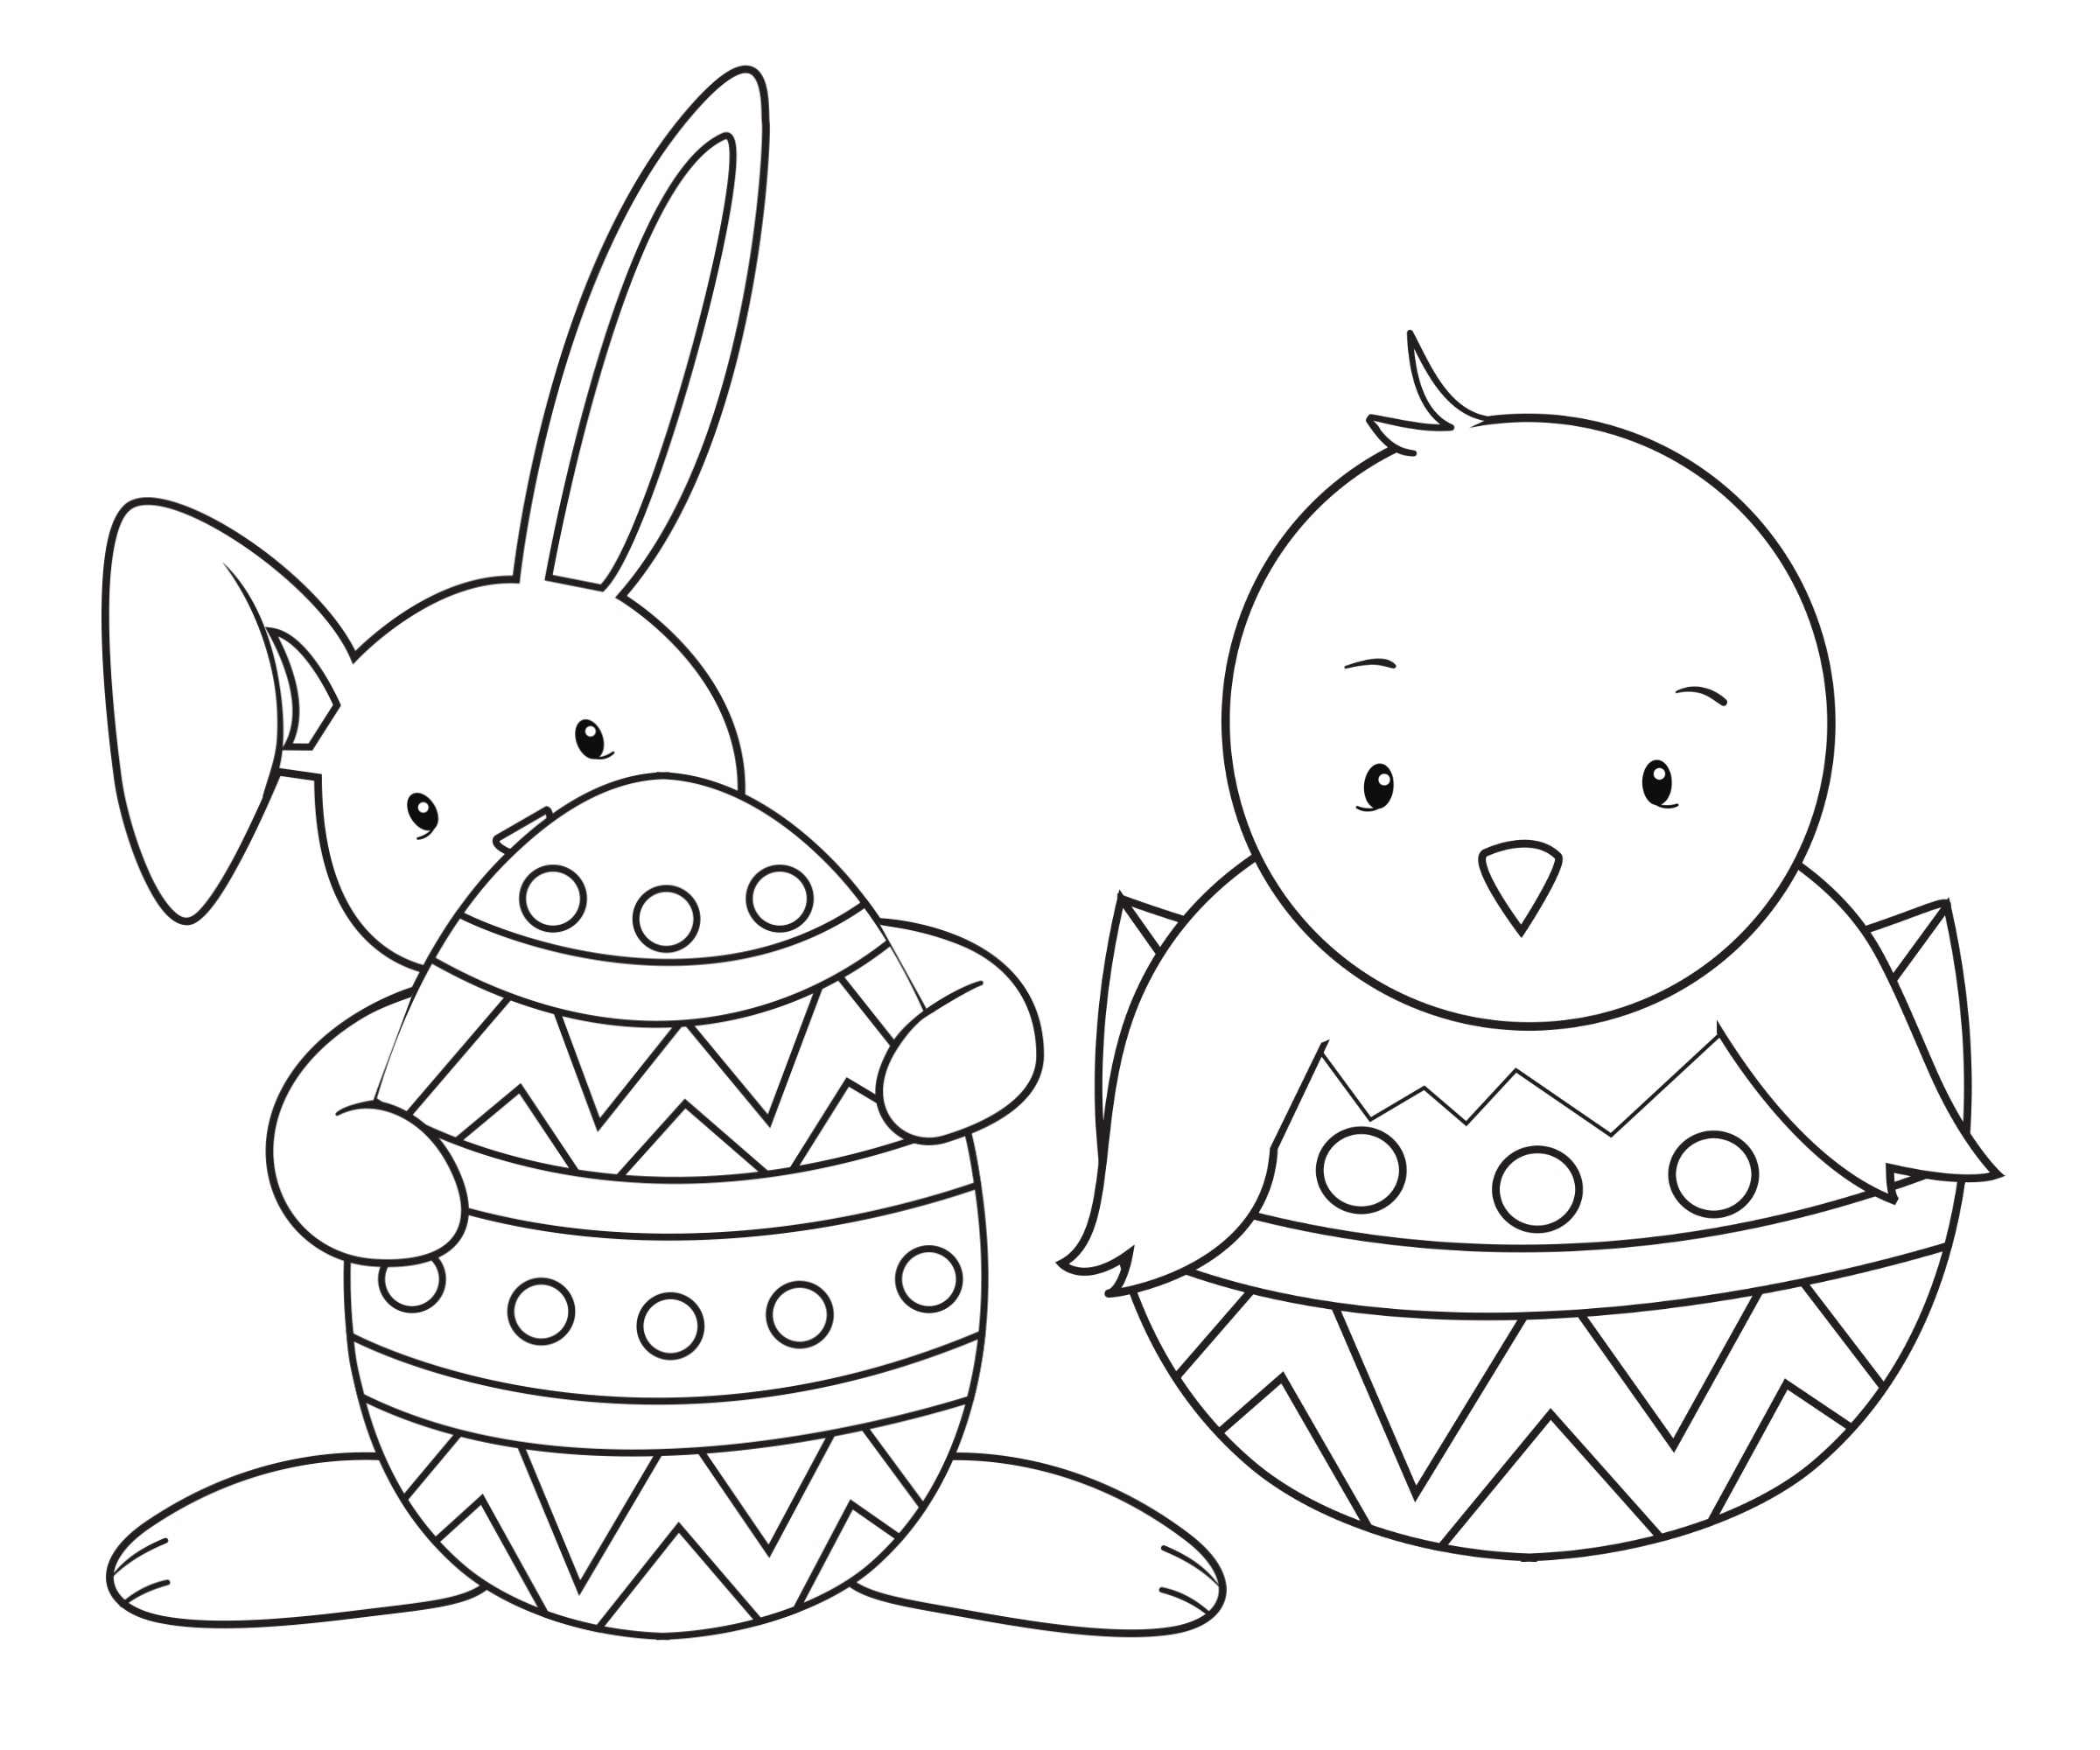 Easter Candy Coloring Pages At Getdrawings Com Free For